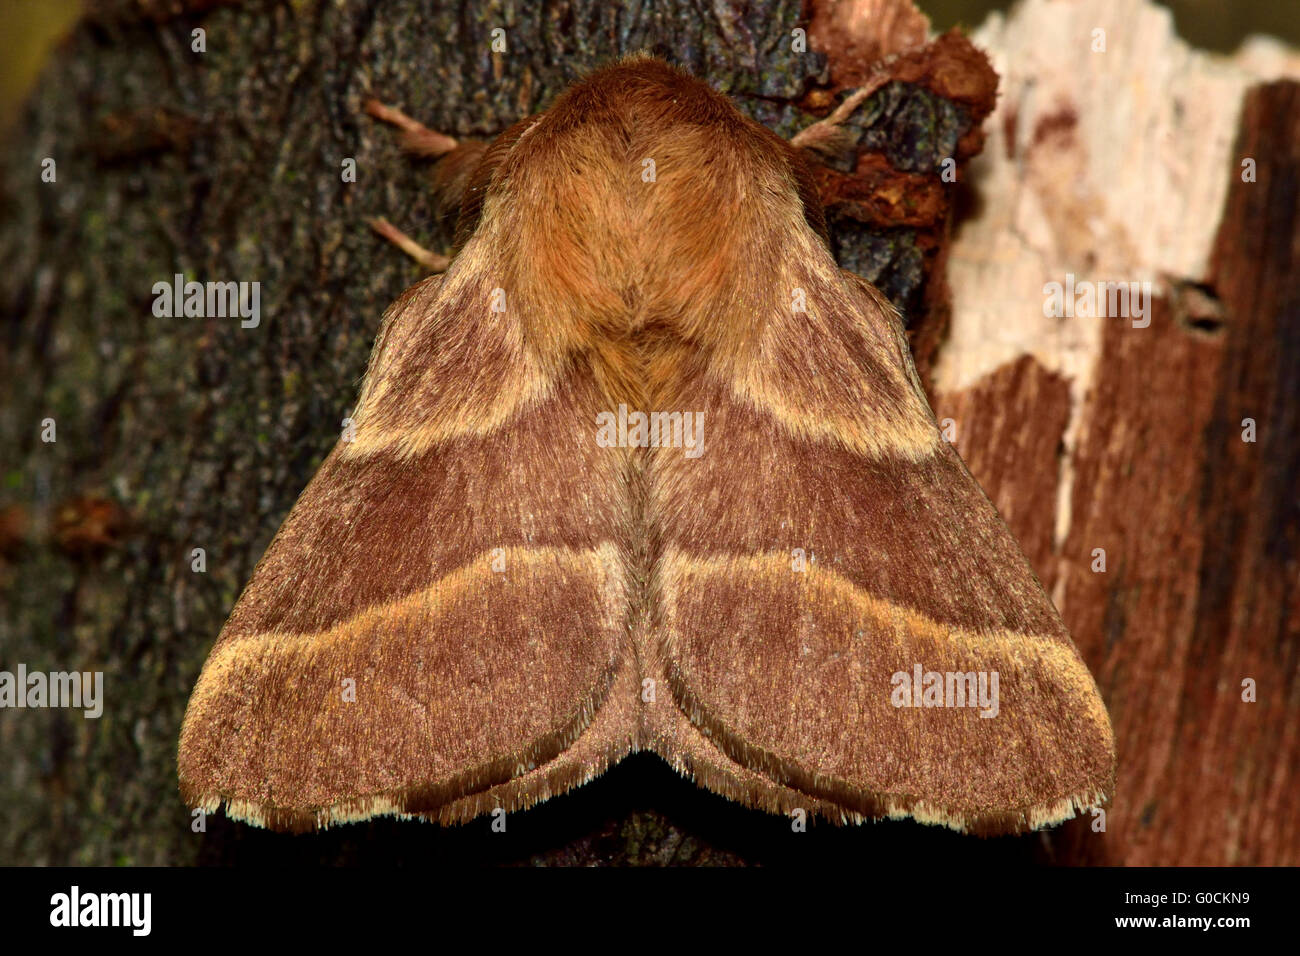 The lackey moth (Malacosoma neustria) from above. Distinctive moth in the family Lasiocampidae, at rest - Stock Image